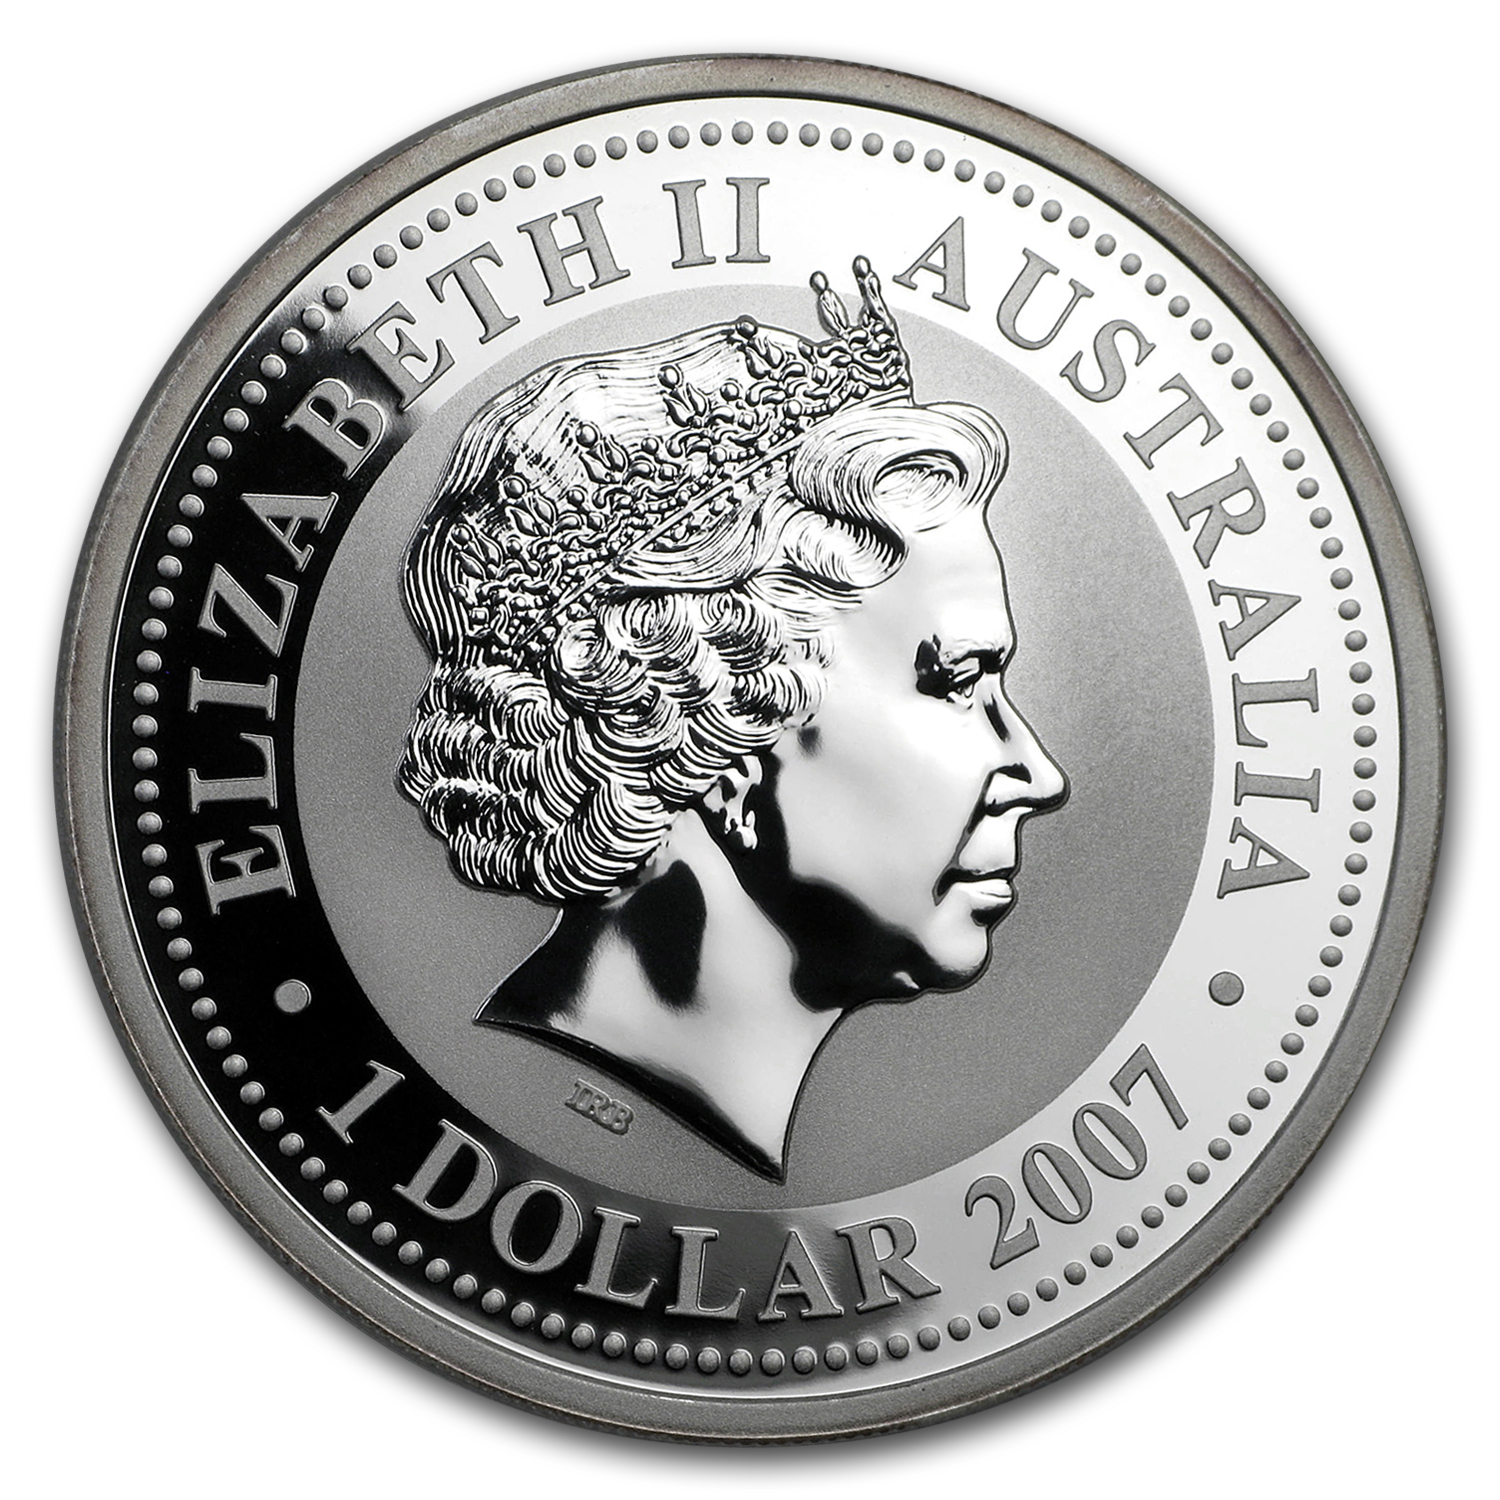 2010 Australia 1 oz Silver Year of the Tiger BU (Series I)